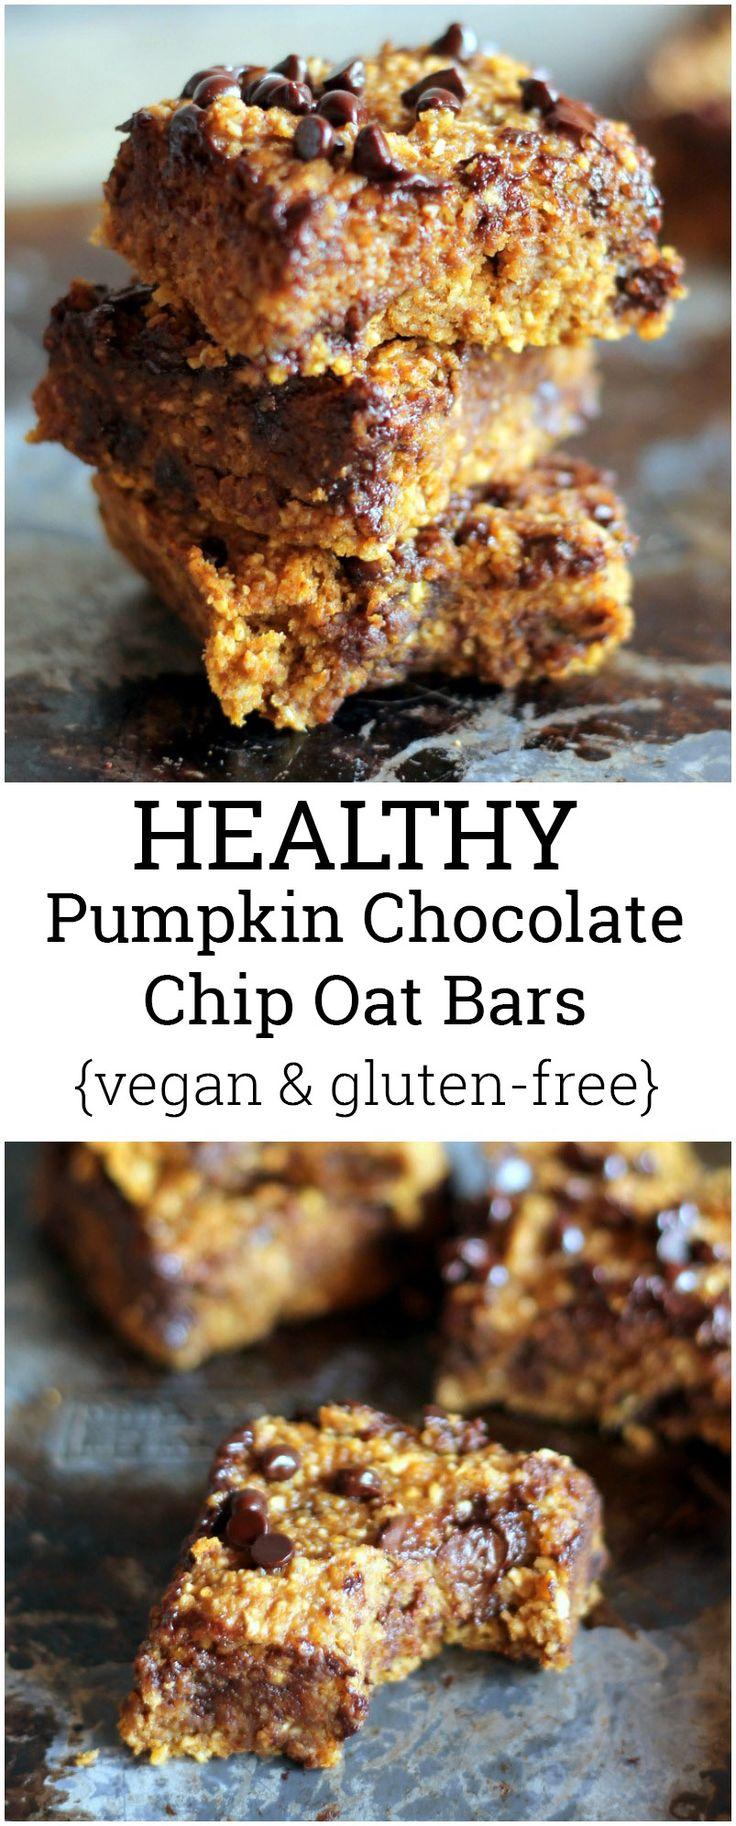 A healthy pumpkin chocolate chip bar made with oat flour and no butter! Vegan and gluten free!